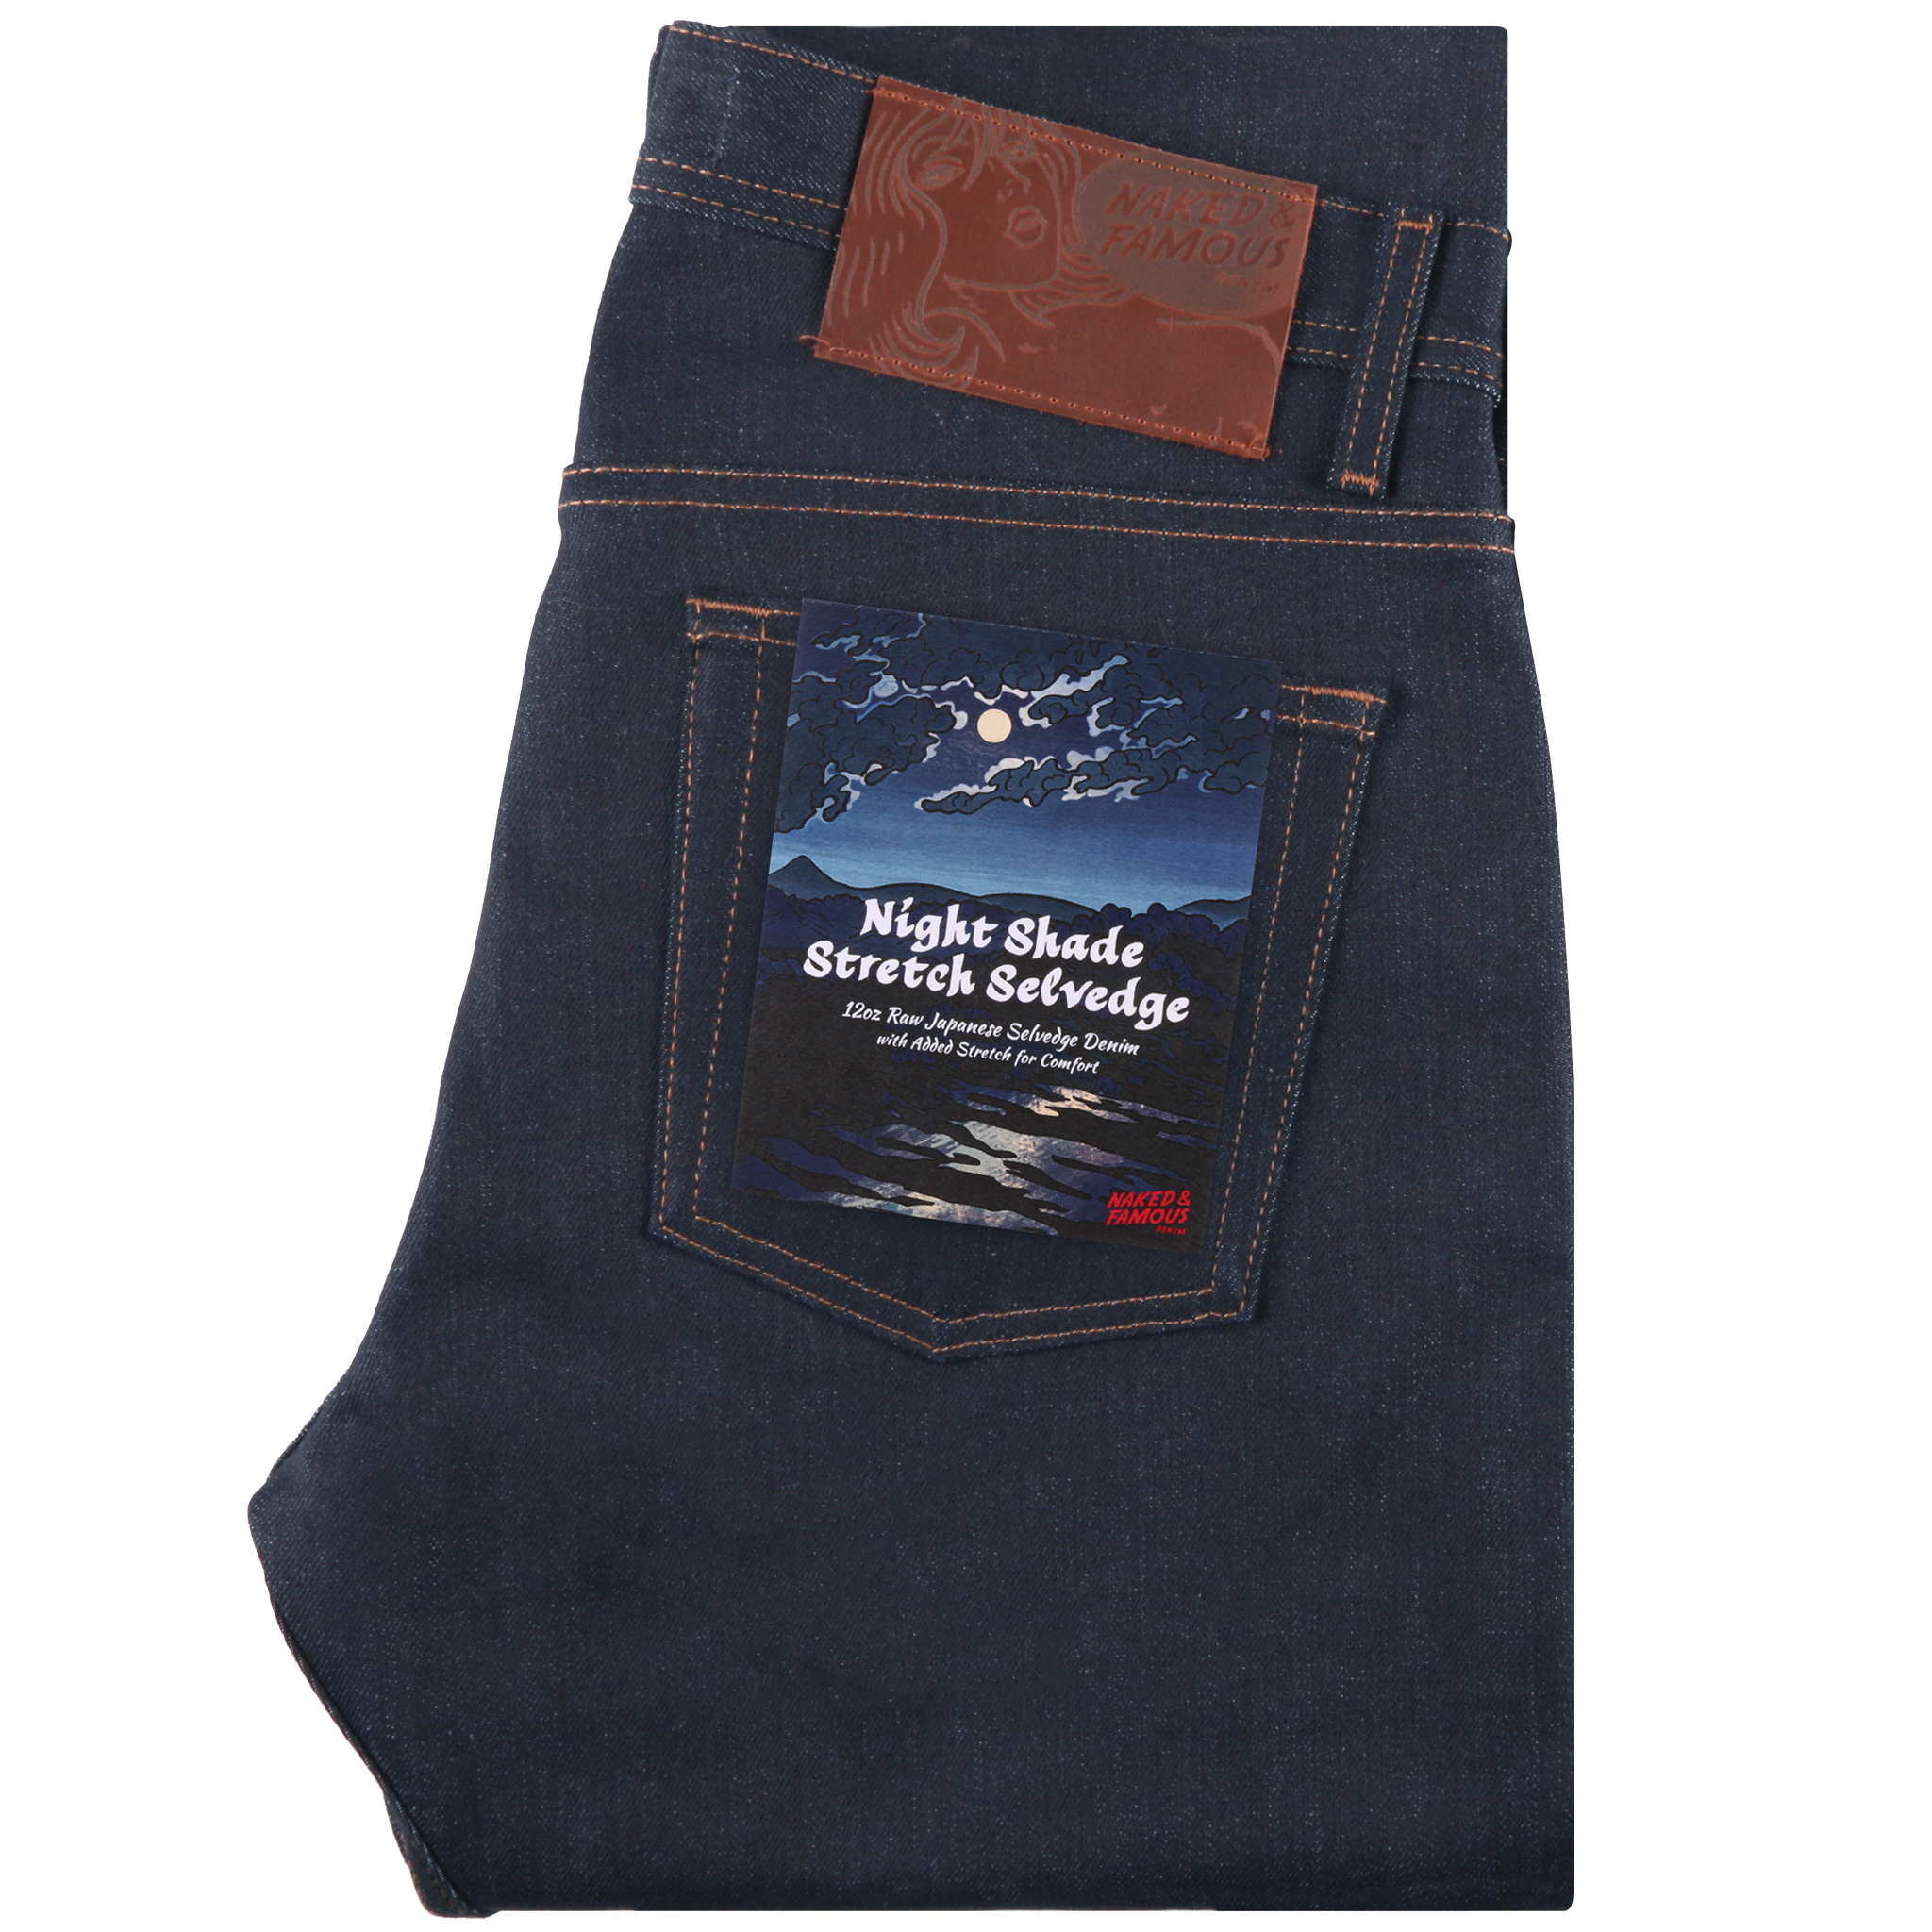 Night Shade Stretch Selvedge Jeans Folded